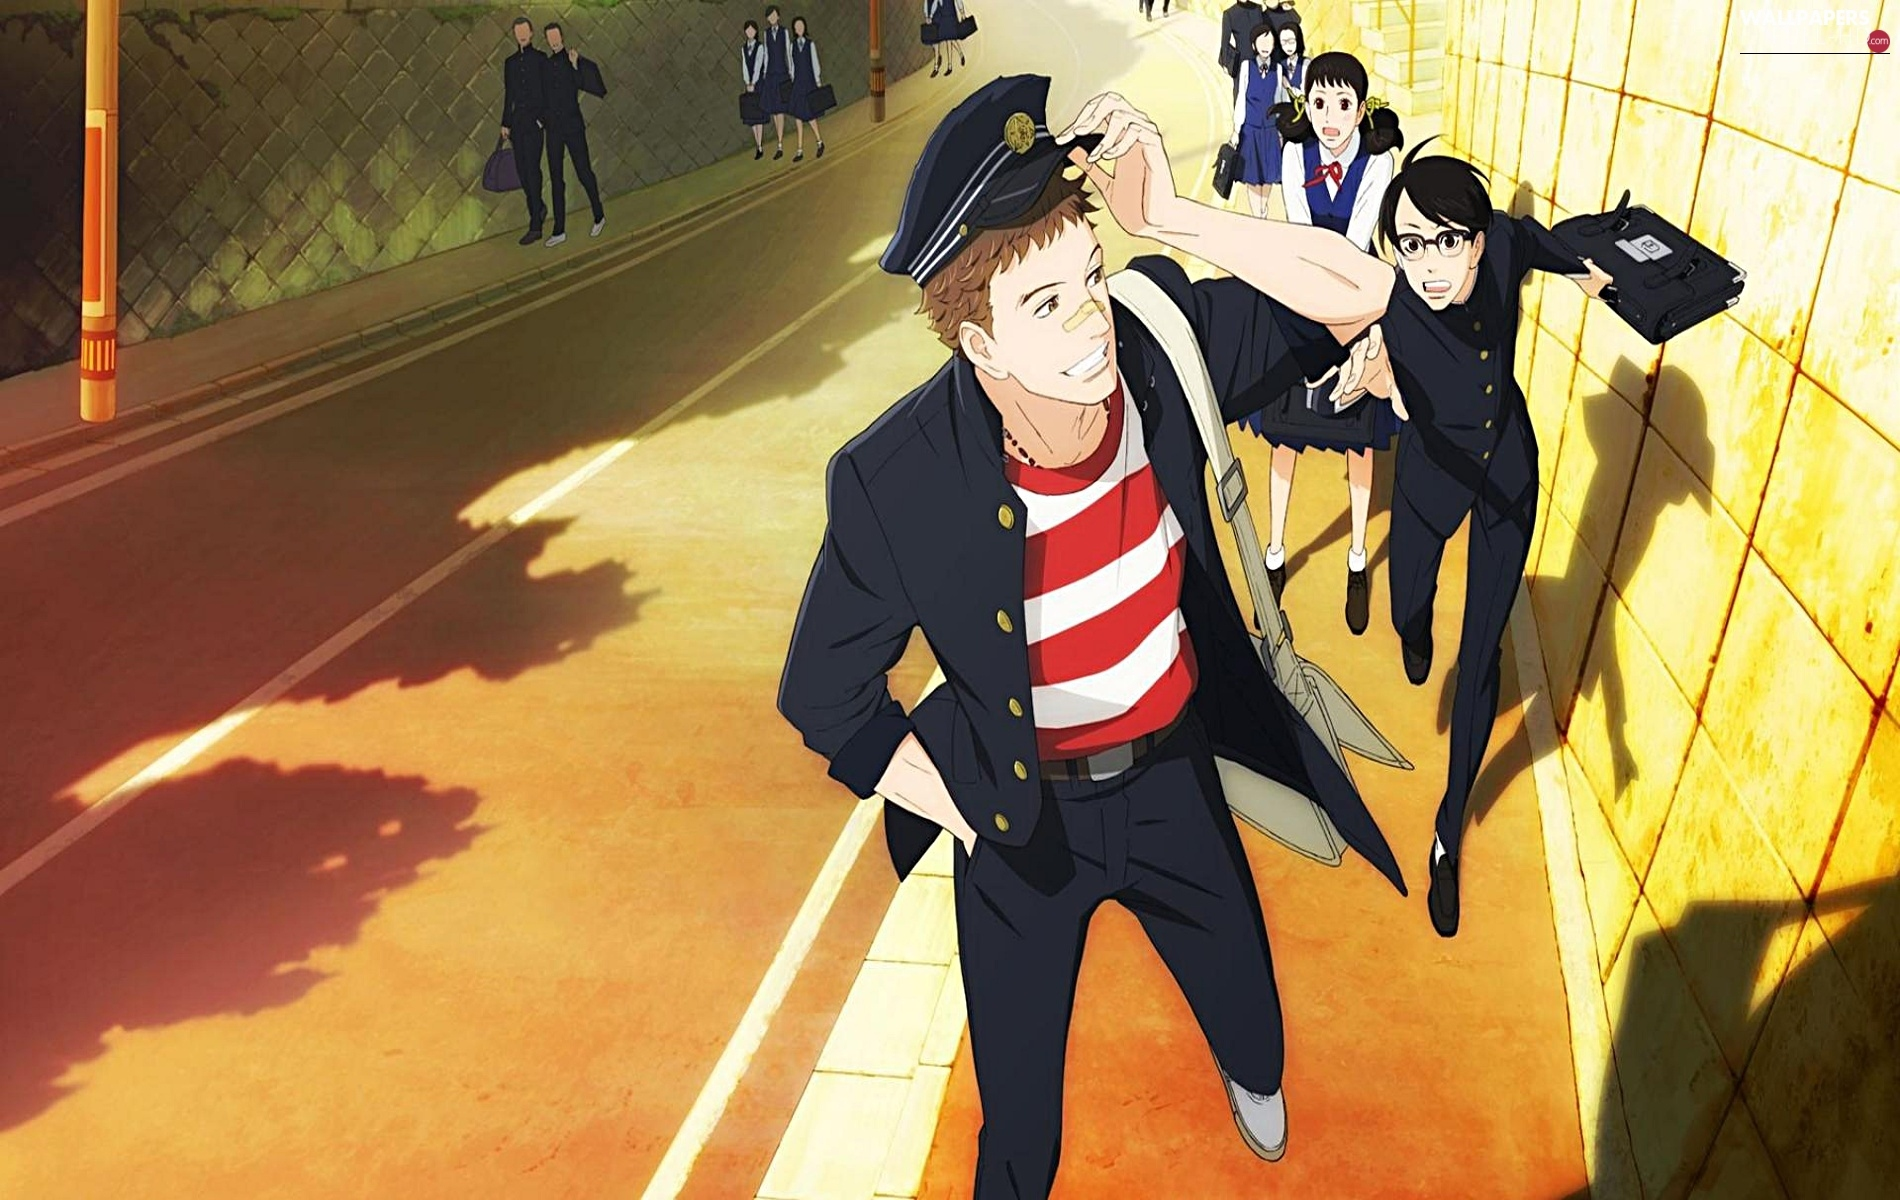 Street, uniform, Sakamichi no Apollon, Anime, boy